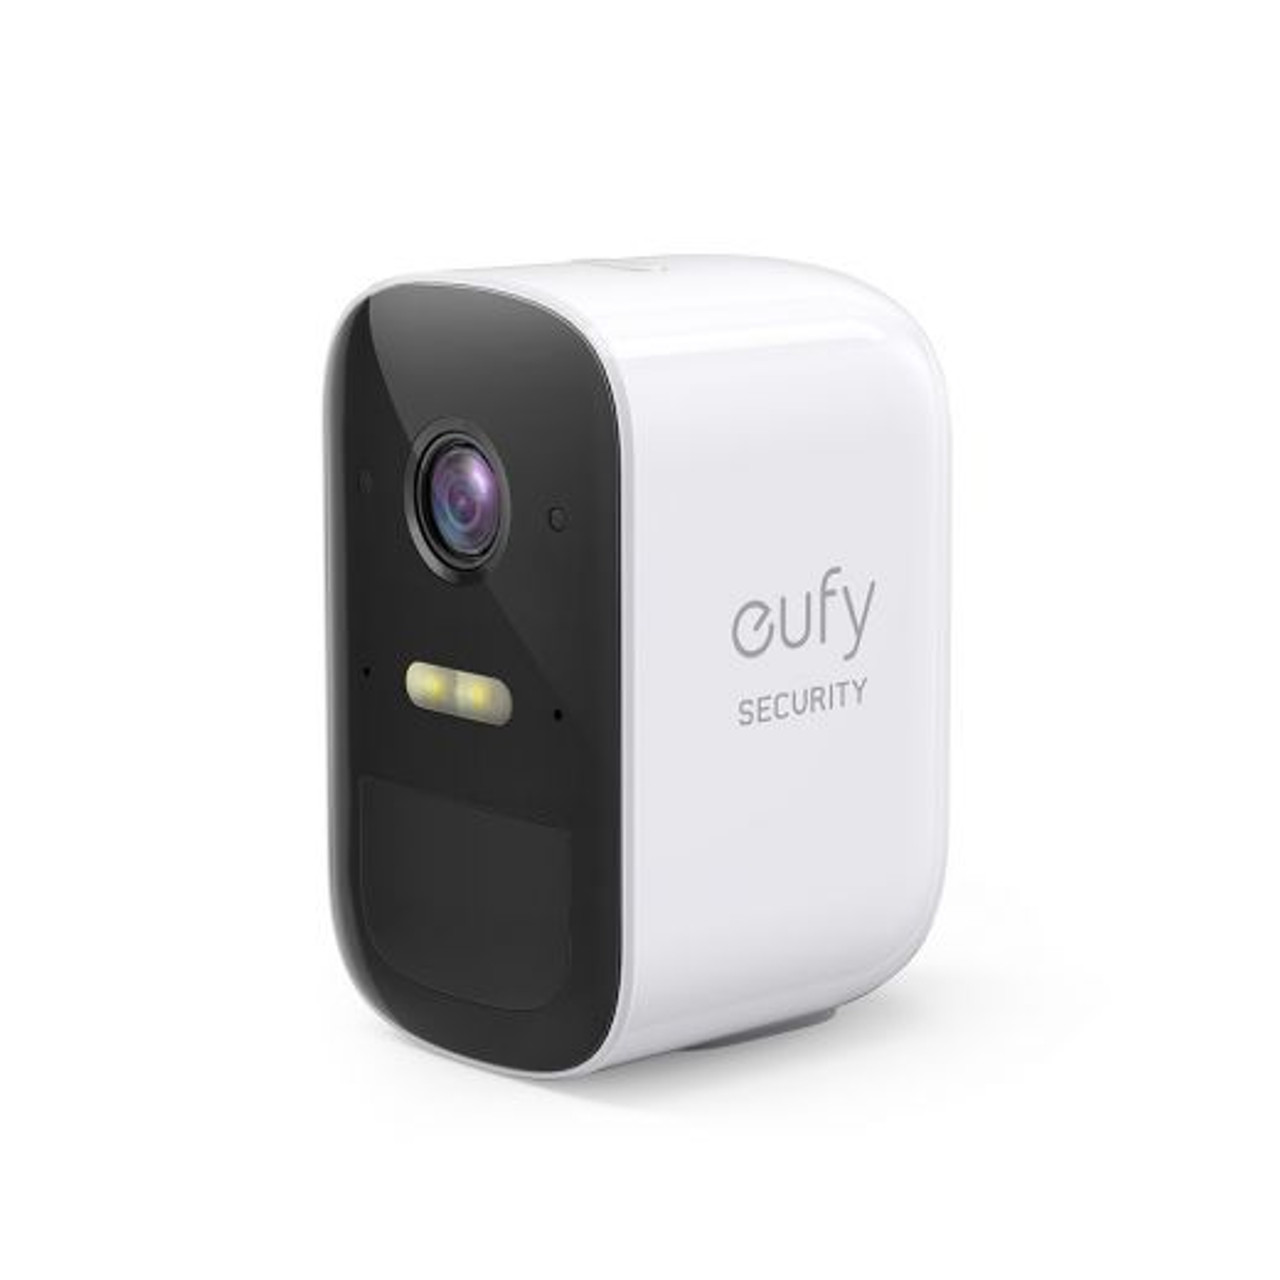 Eufy T8861CD1 Cam 2C Wire Free Full-HD Security 2-Camera Set with Homebase